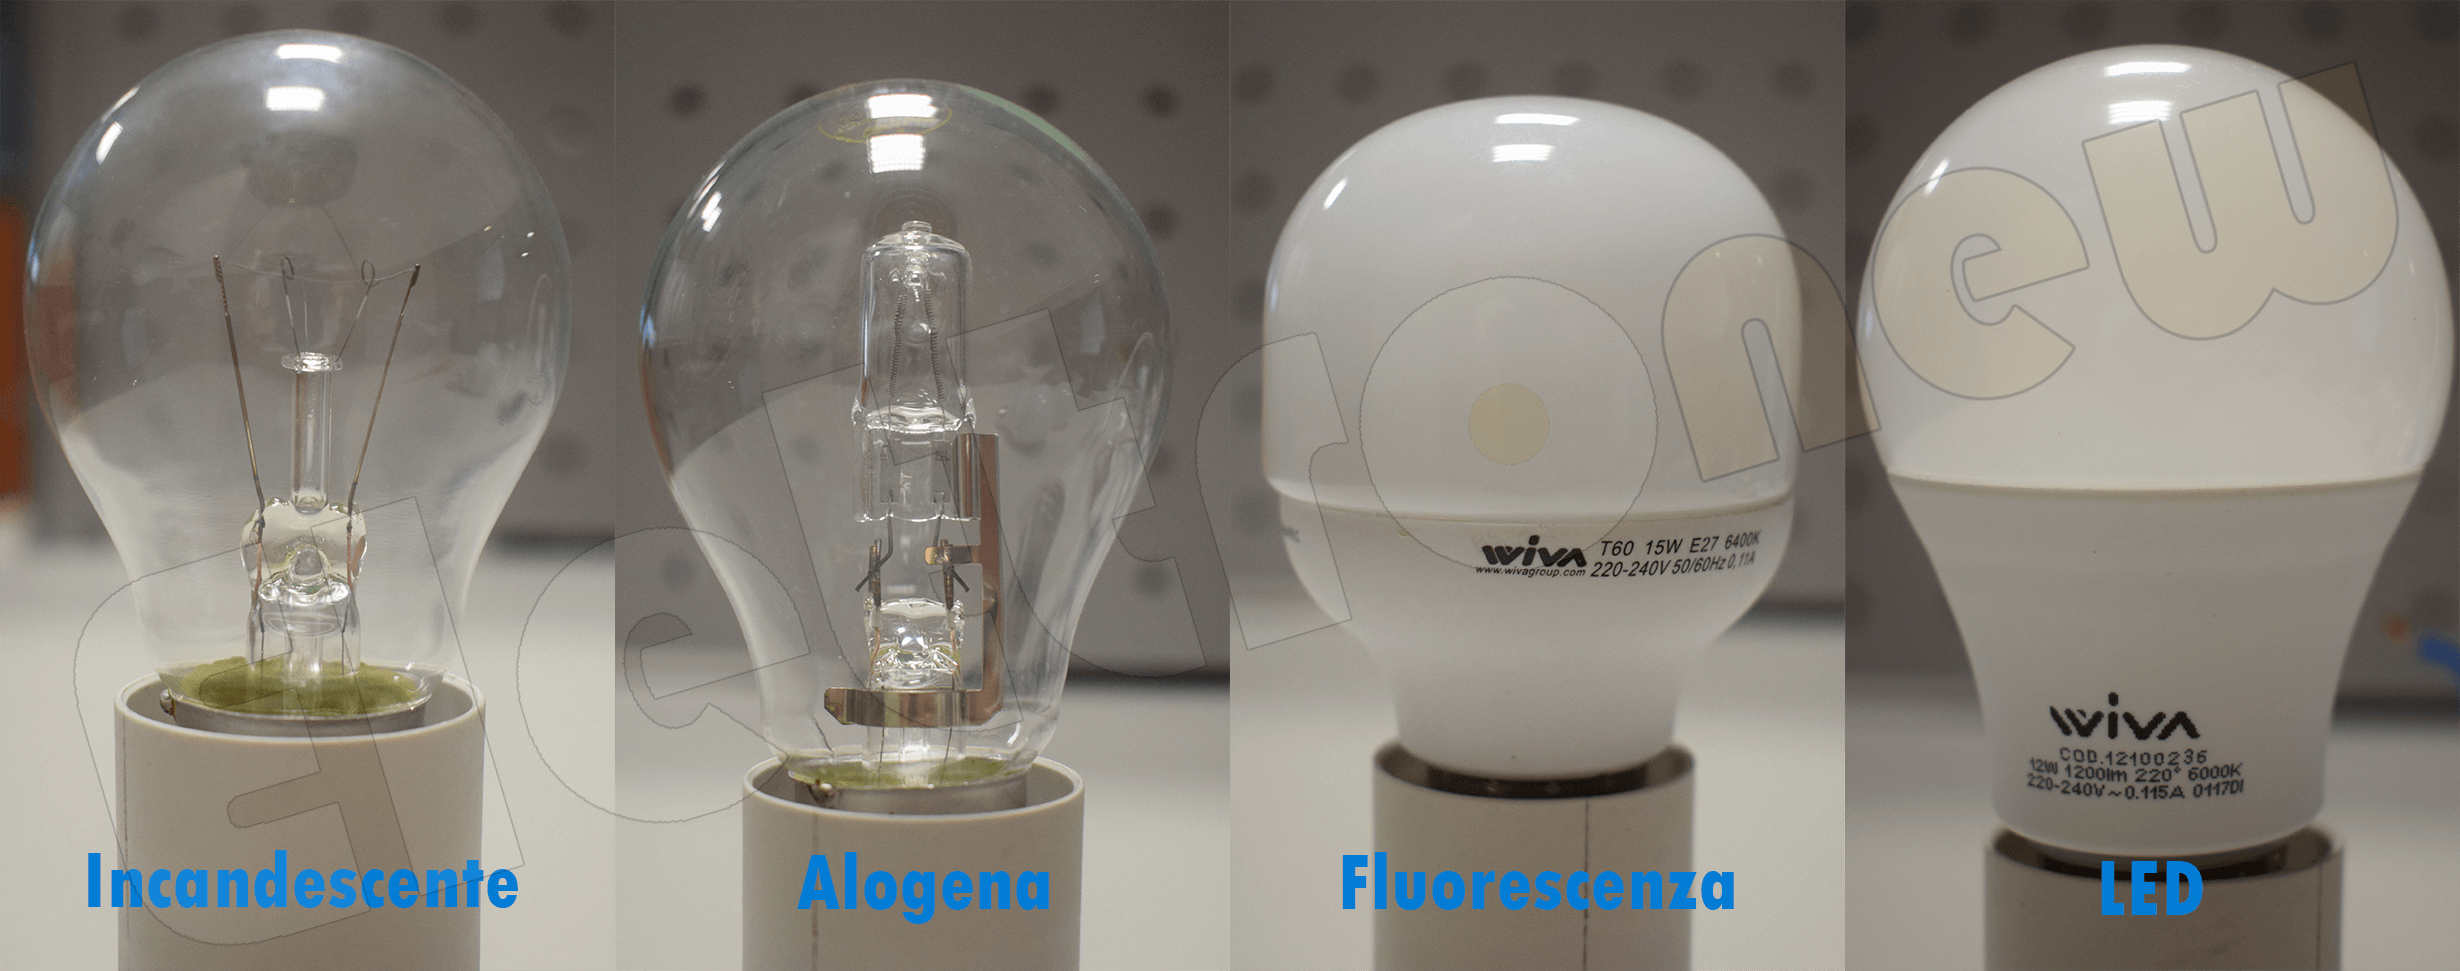 Differenza Tra Luce Led E Alogena.Lampadina Led E Alogena Guida All Acquisto